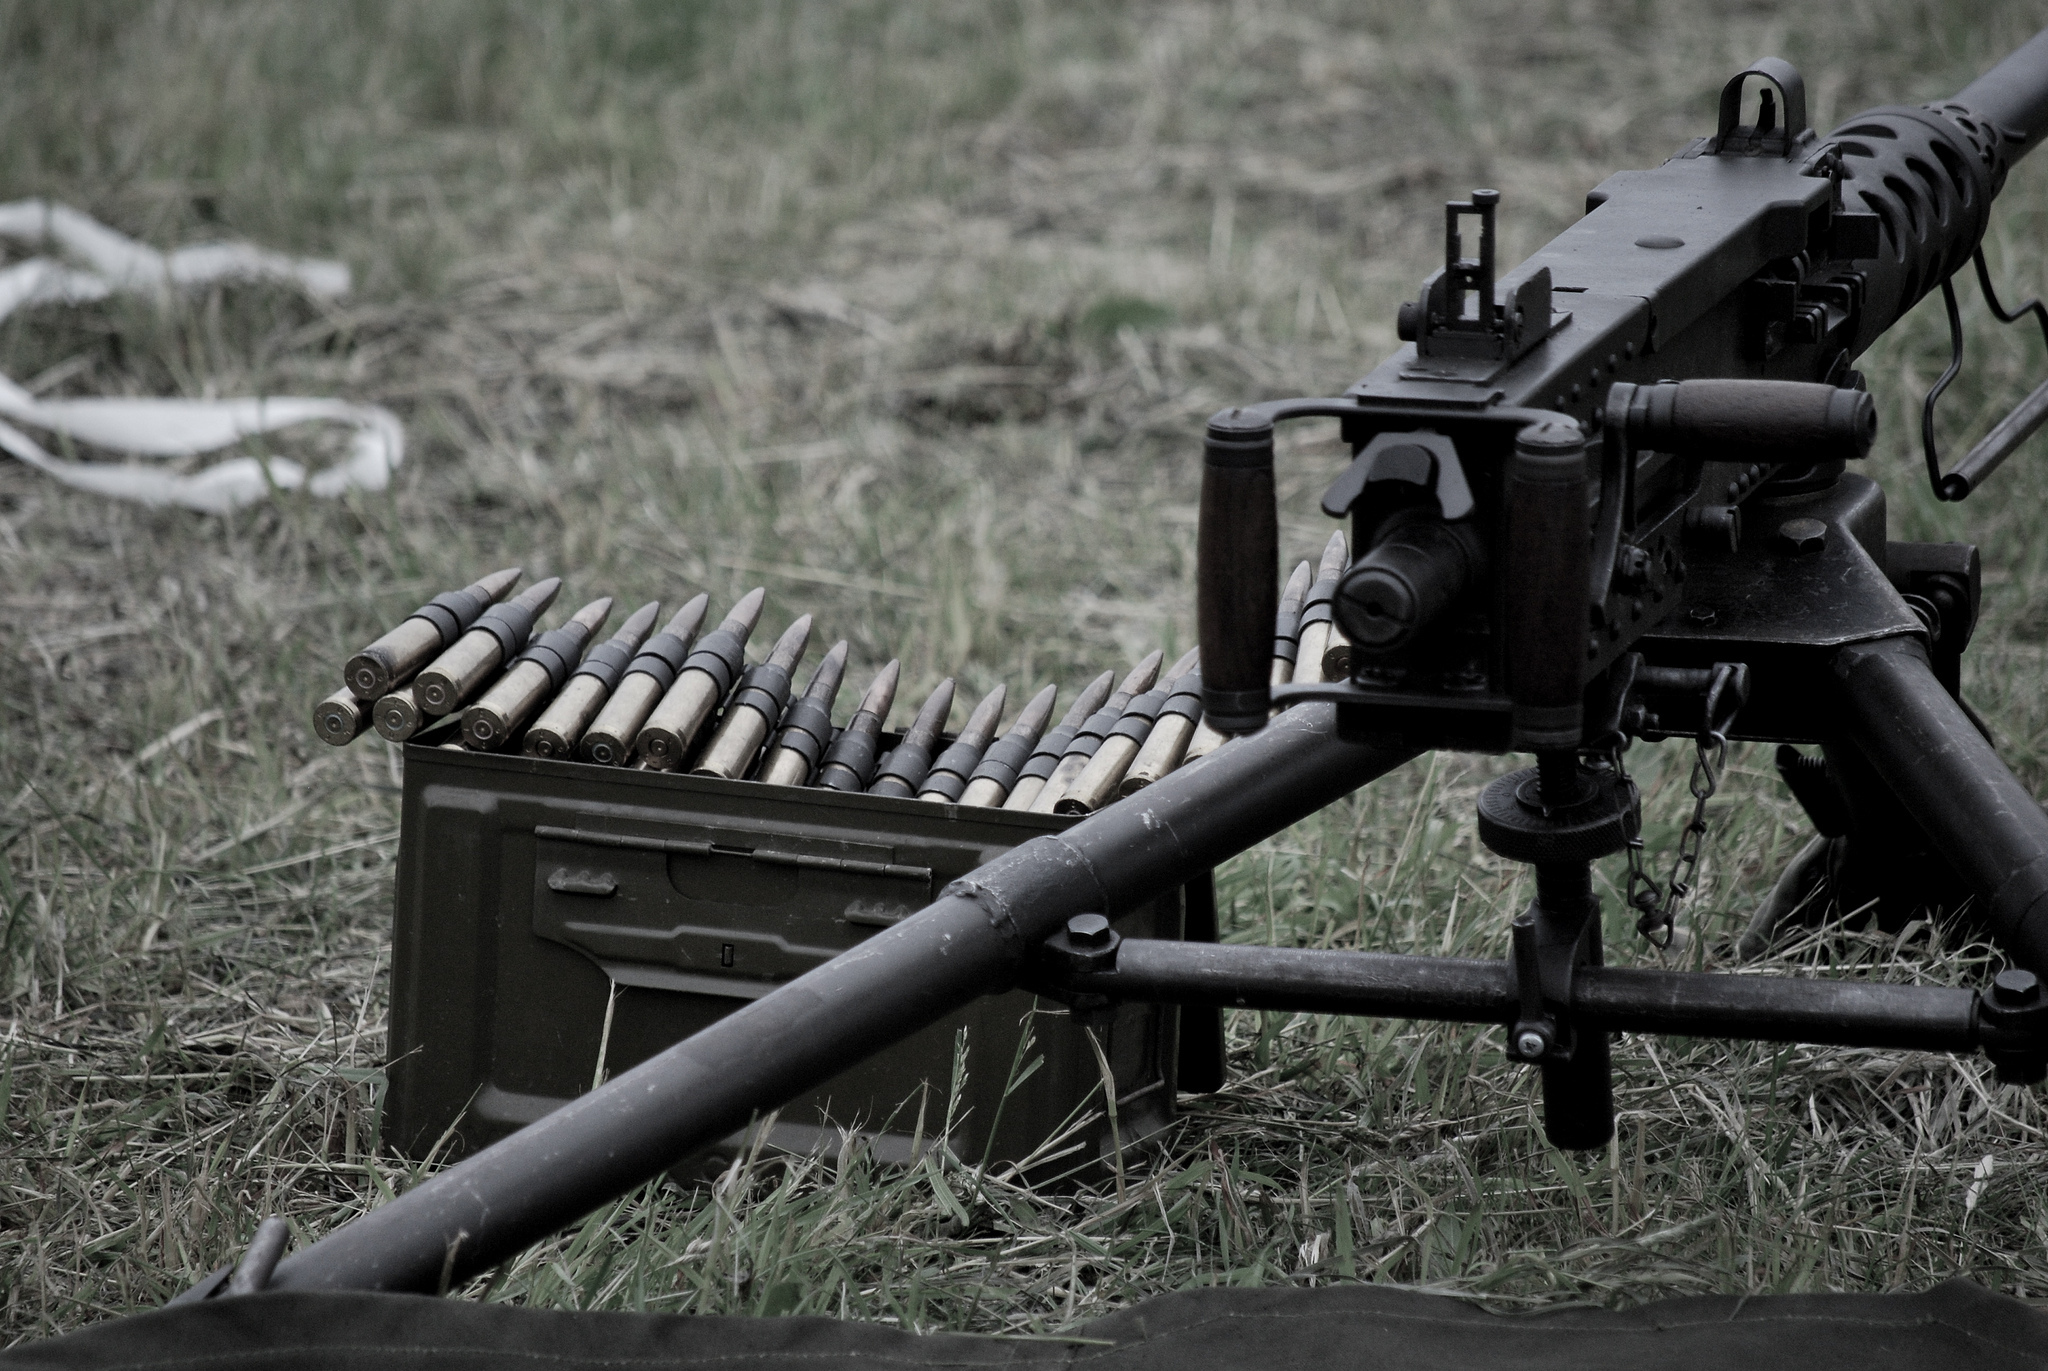 Browning M2 Machine Gun Full HD Wallpaper And Background Image